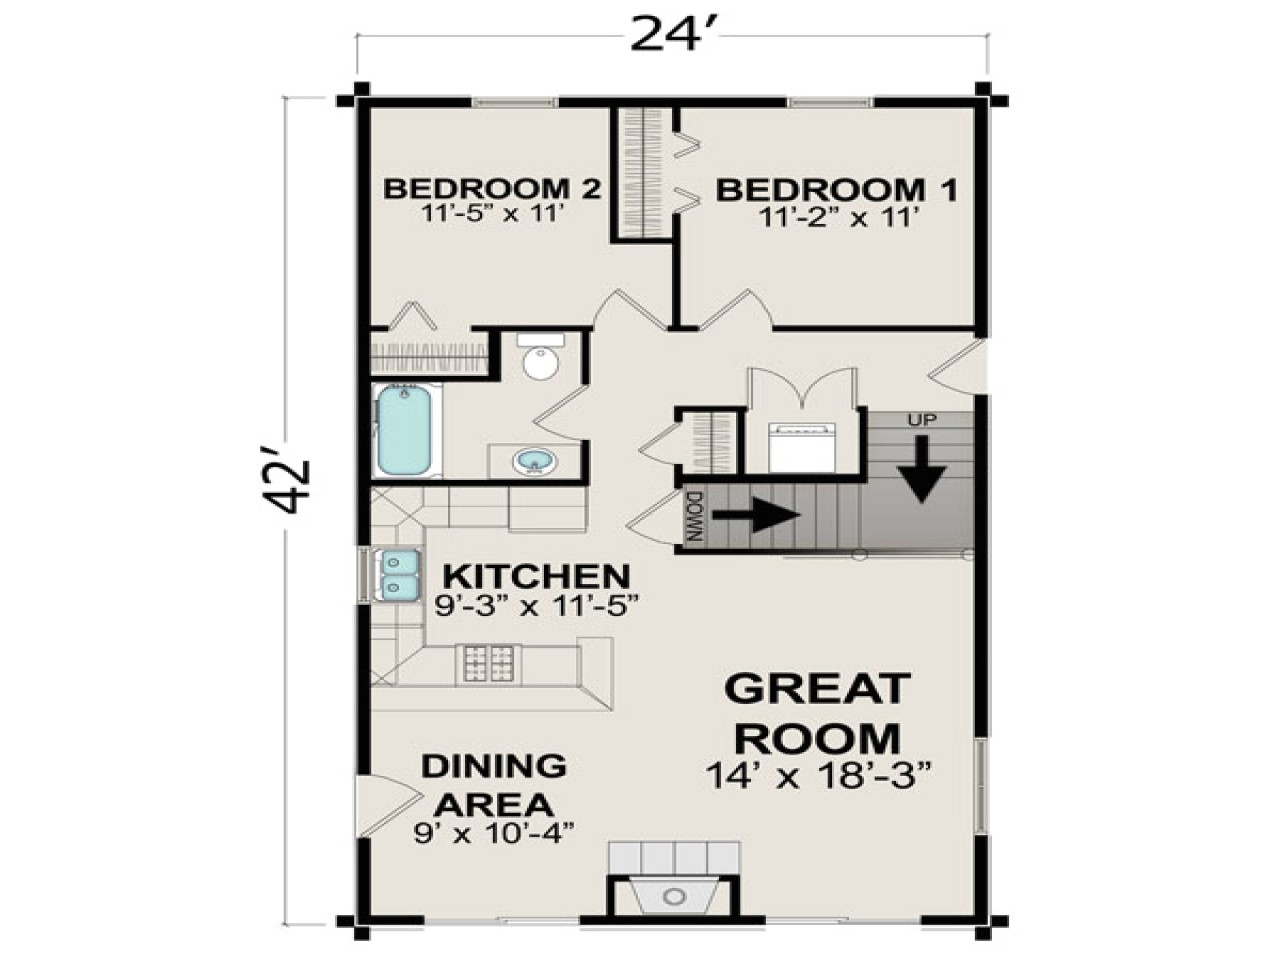 236013ce68f97c41 small house plans under 1000 sq ft small house plans under 600 sq ft